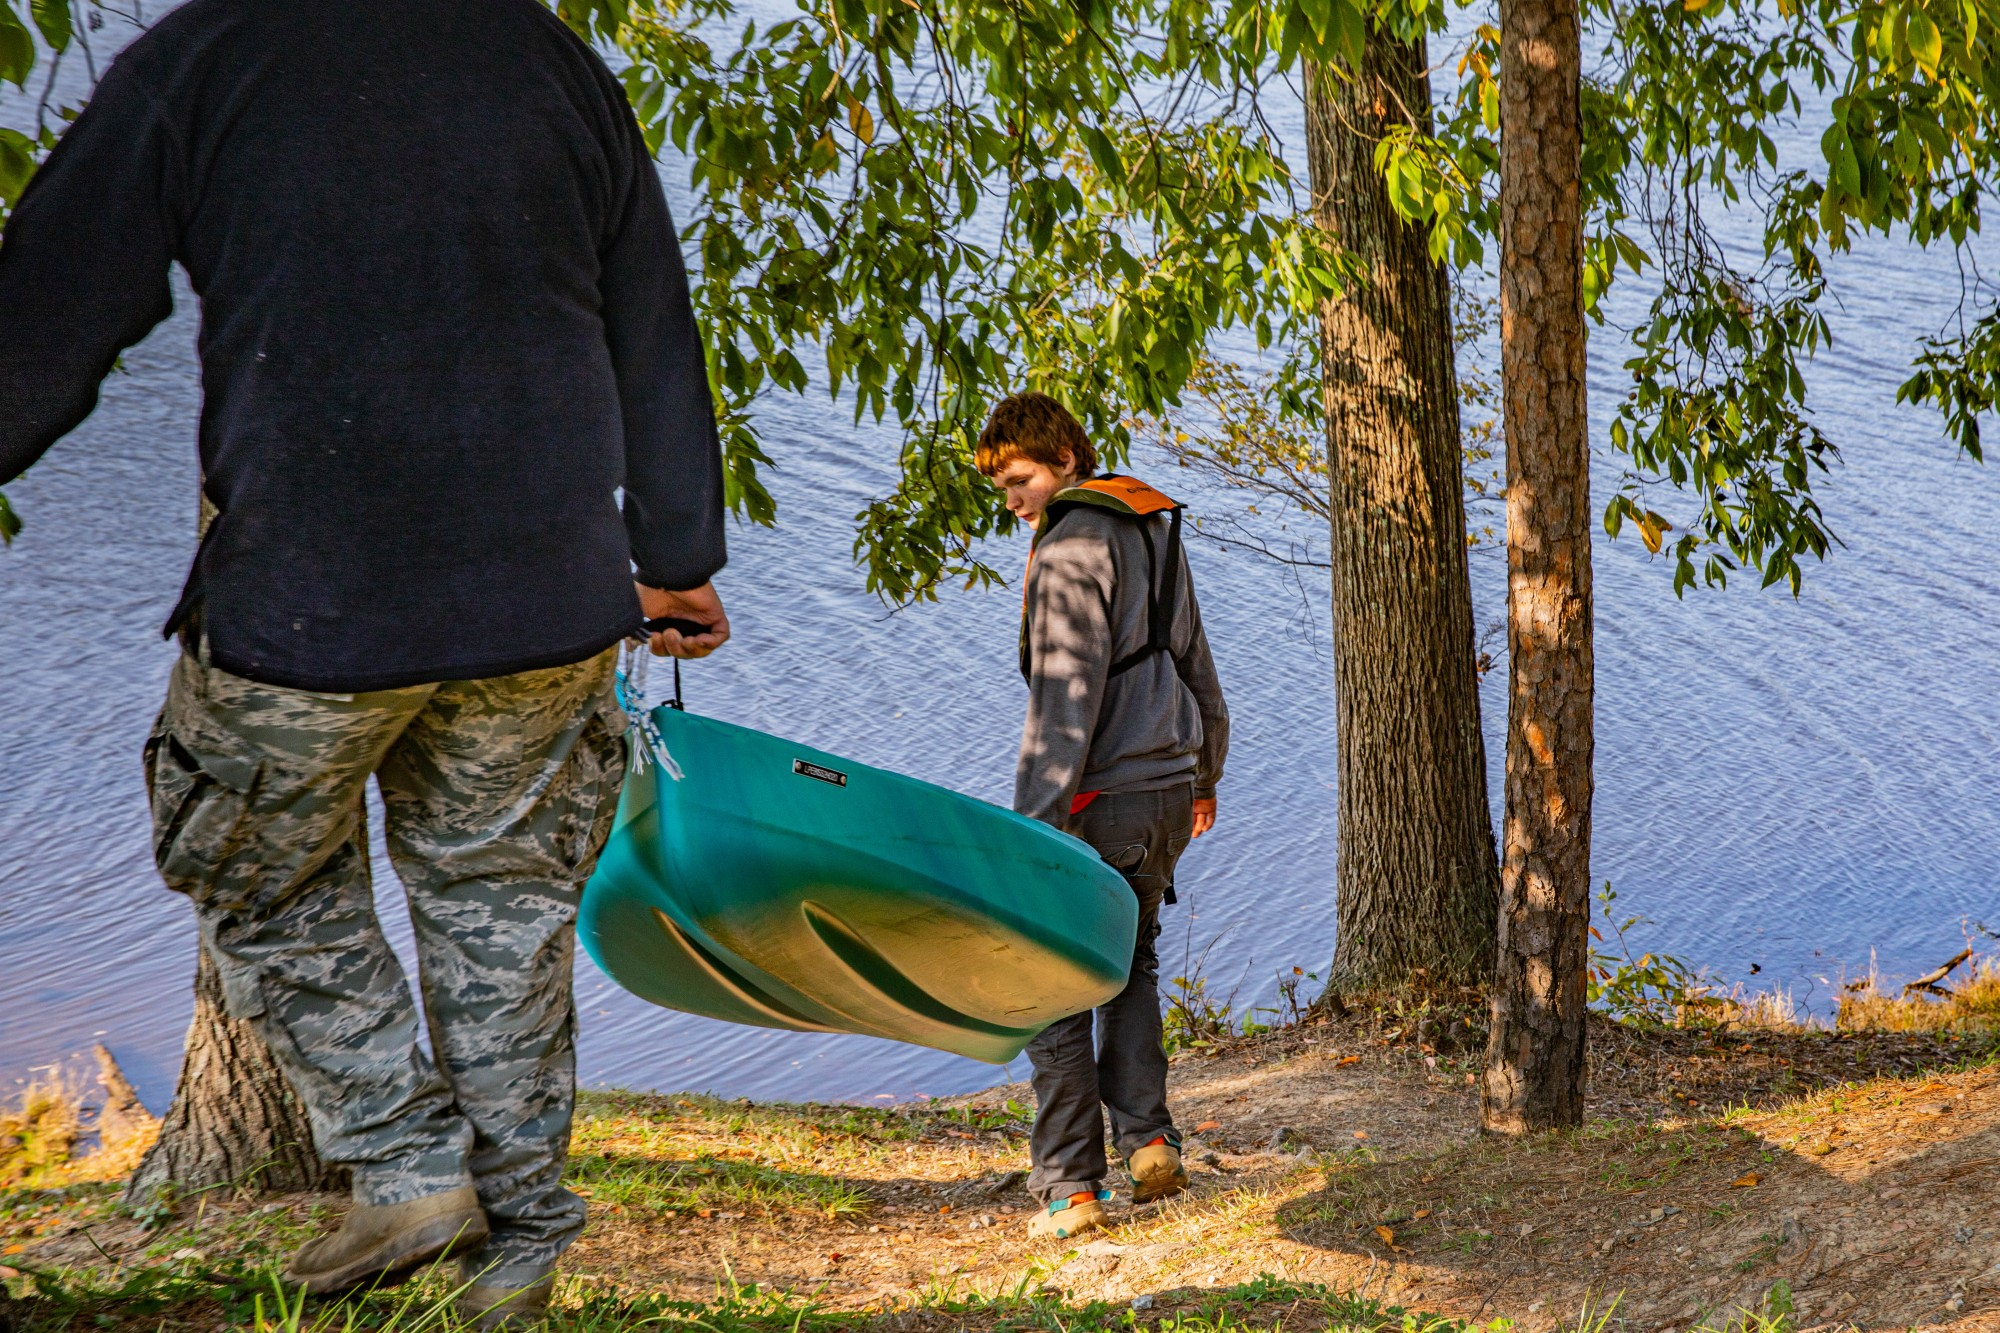 """Stacey Scott assists his son, Micah, with carrying his brand-new kayak from his birthday into thd banks of Lake Hope in McArthur, Ohio, on Tuesday, Oct. 6, 2020. """"We've been out here for a couple weeks,"""" Stacey Scott says, """"When I was stationed out west, the one thing I missed the most was the change in color here around this time."""""""